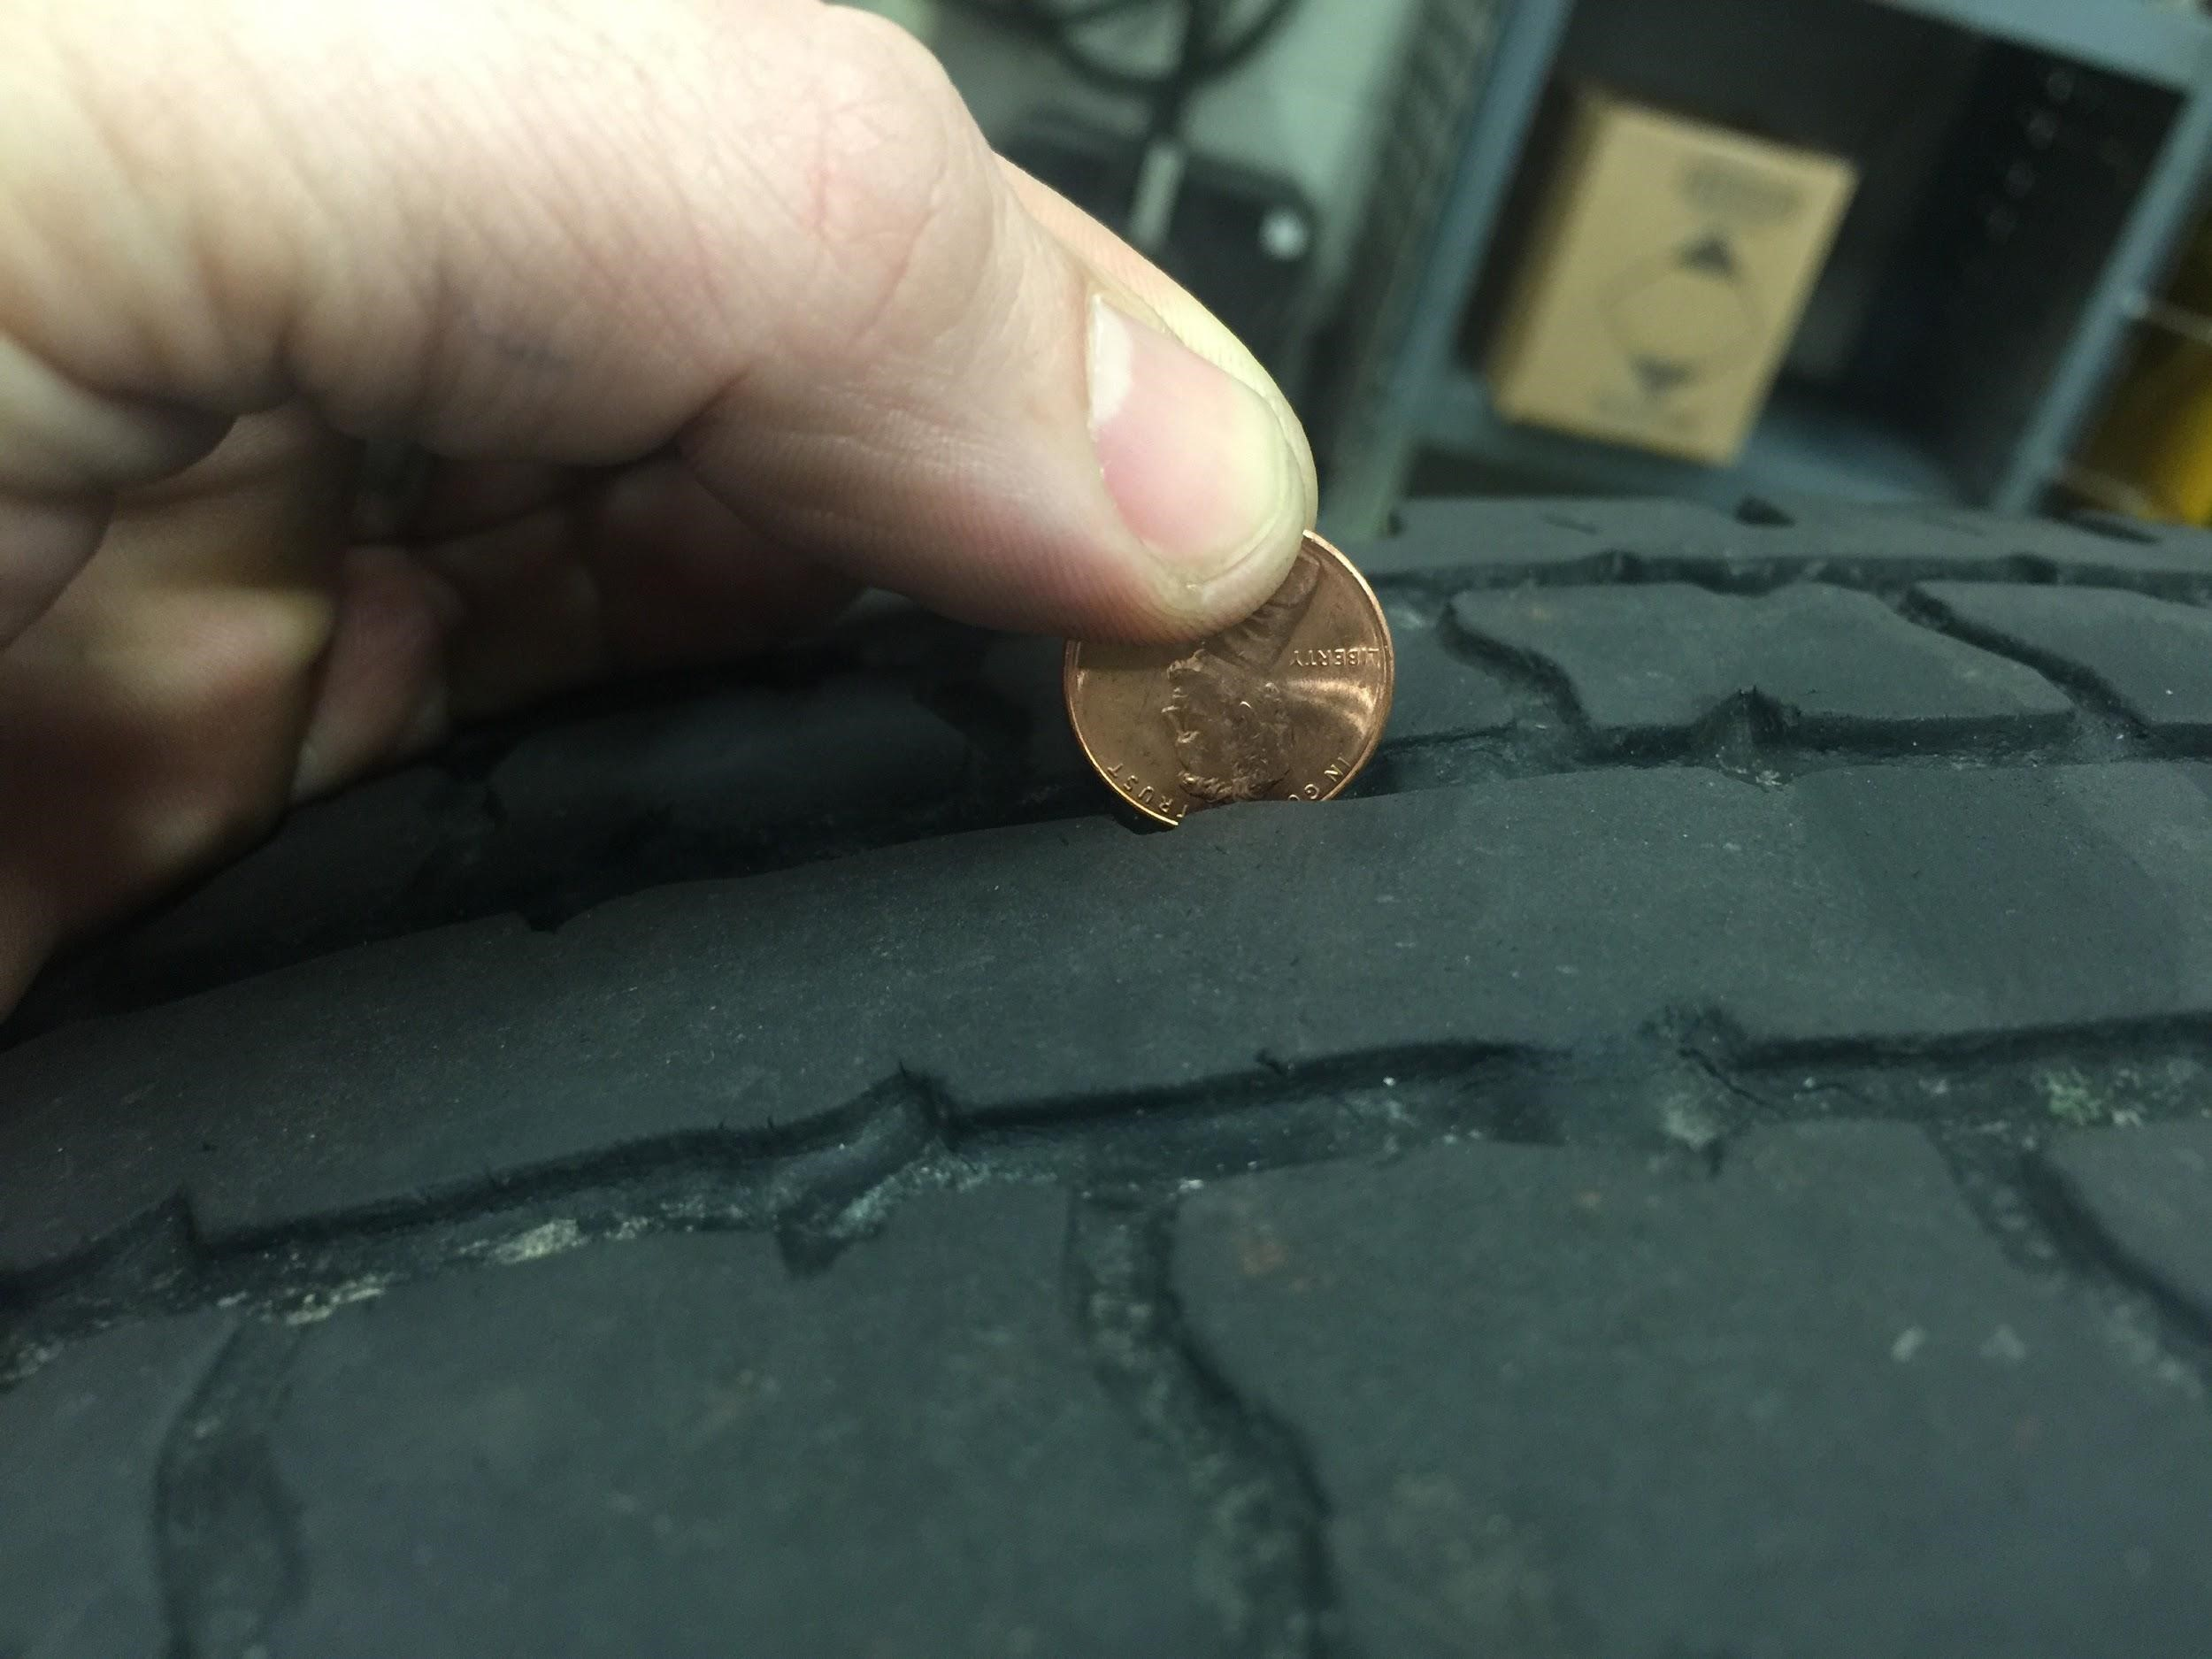 Tire wear penny trick